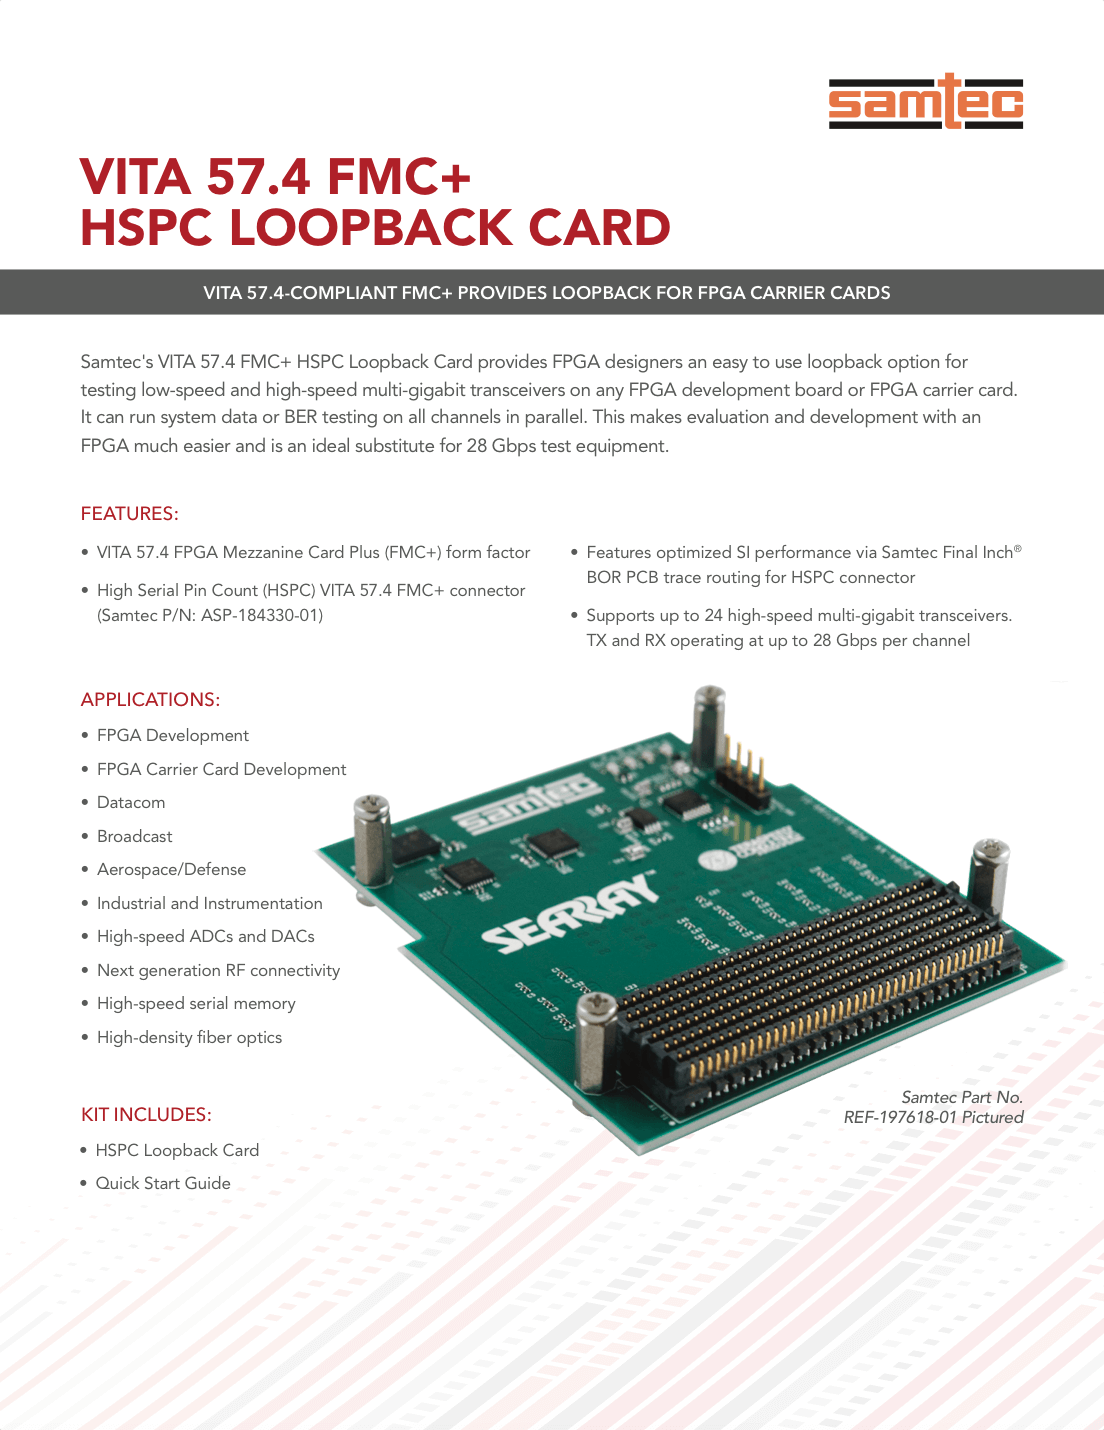 Fmc Hspc Loopback Card Samtec Multi Gigabit Serial Link Analysis Product Brief